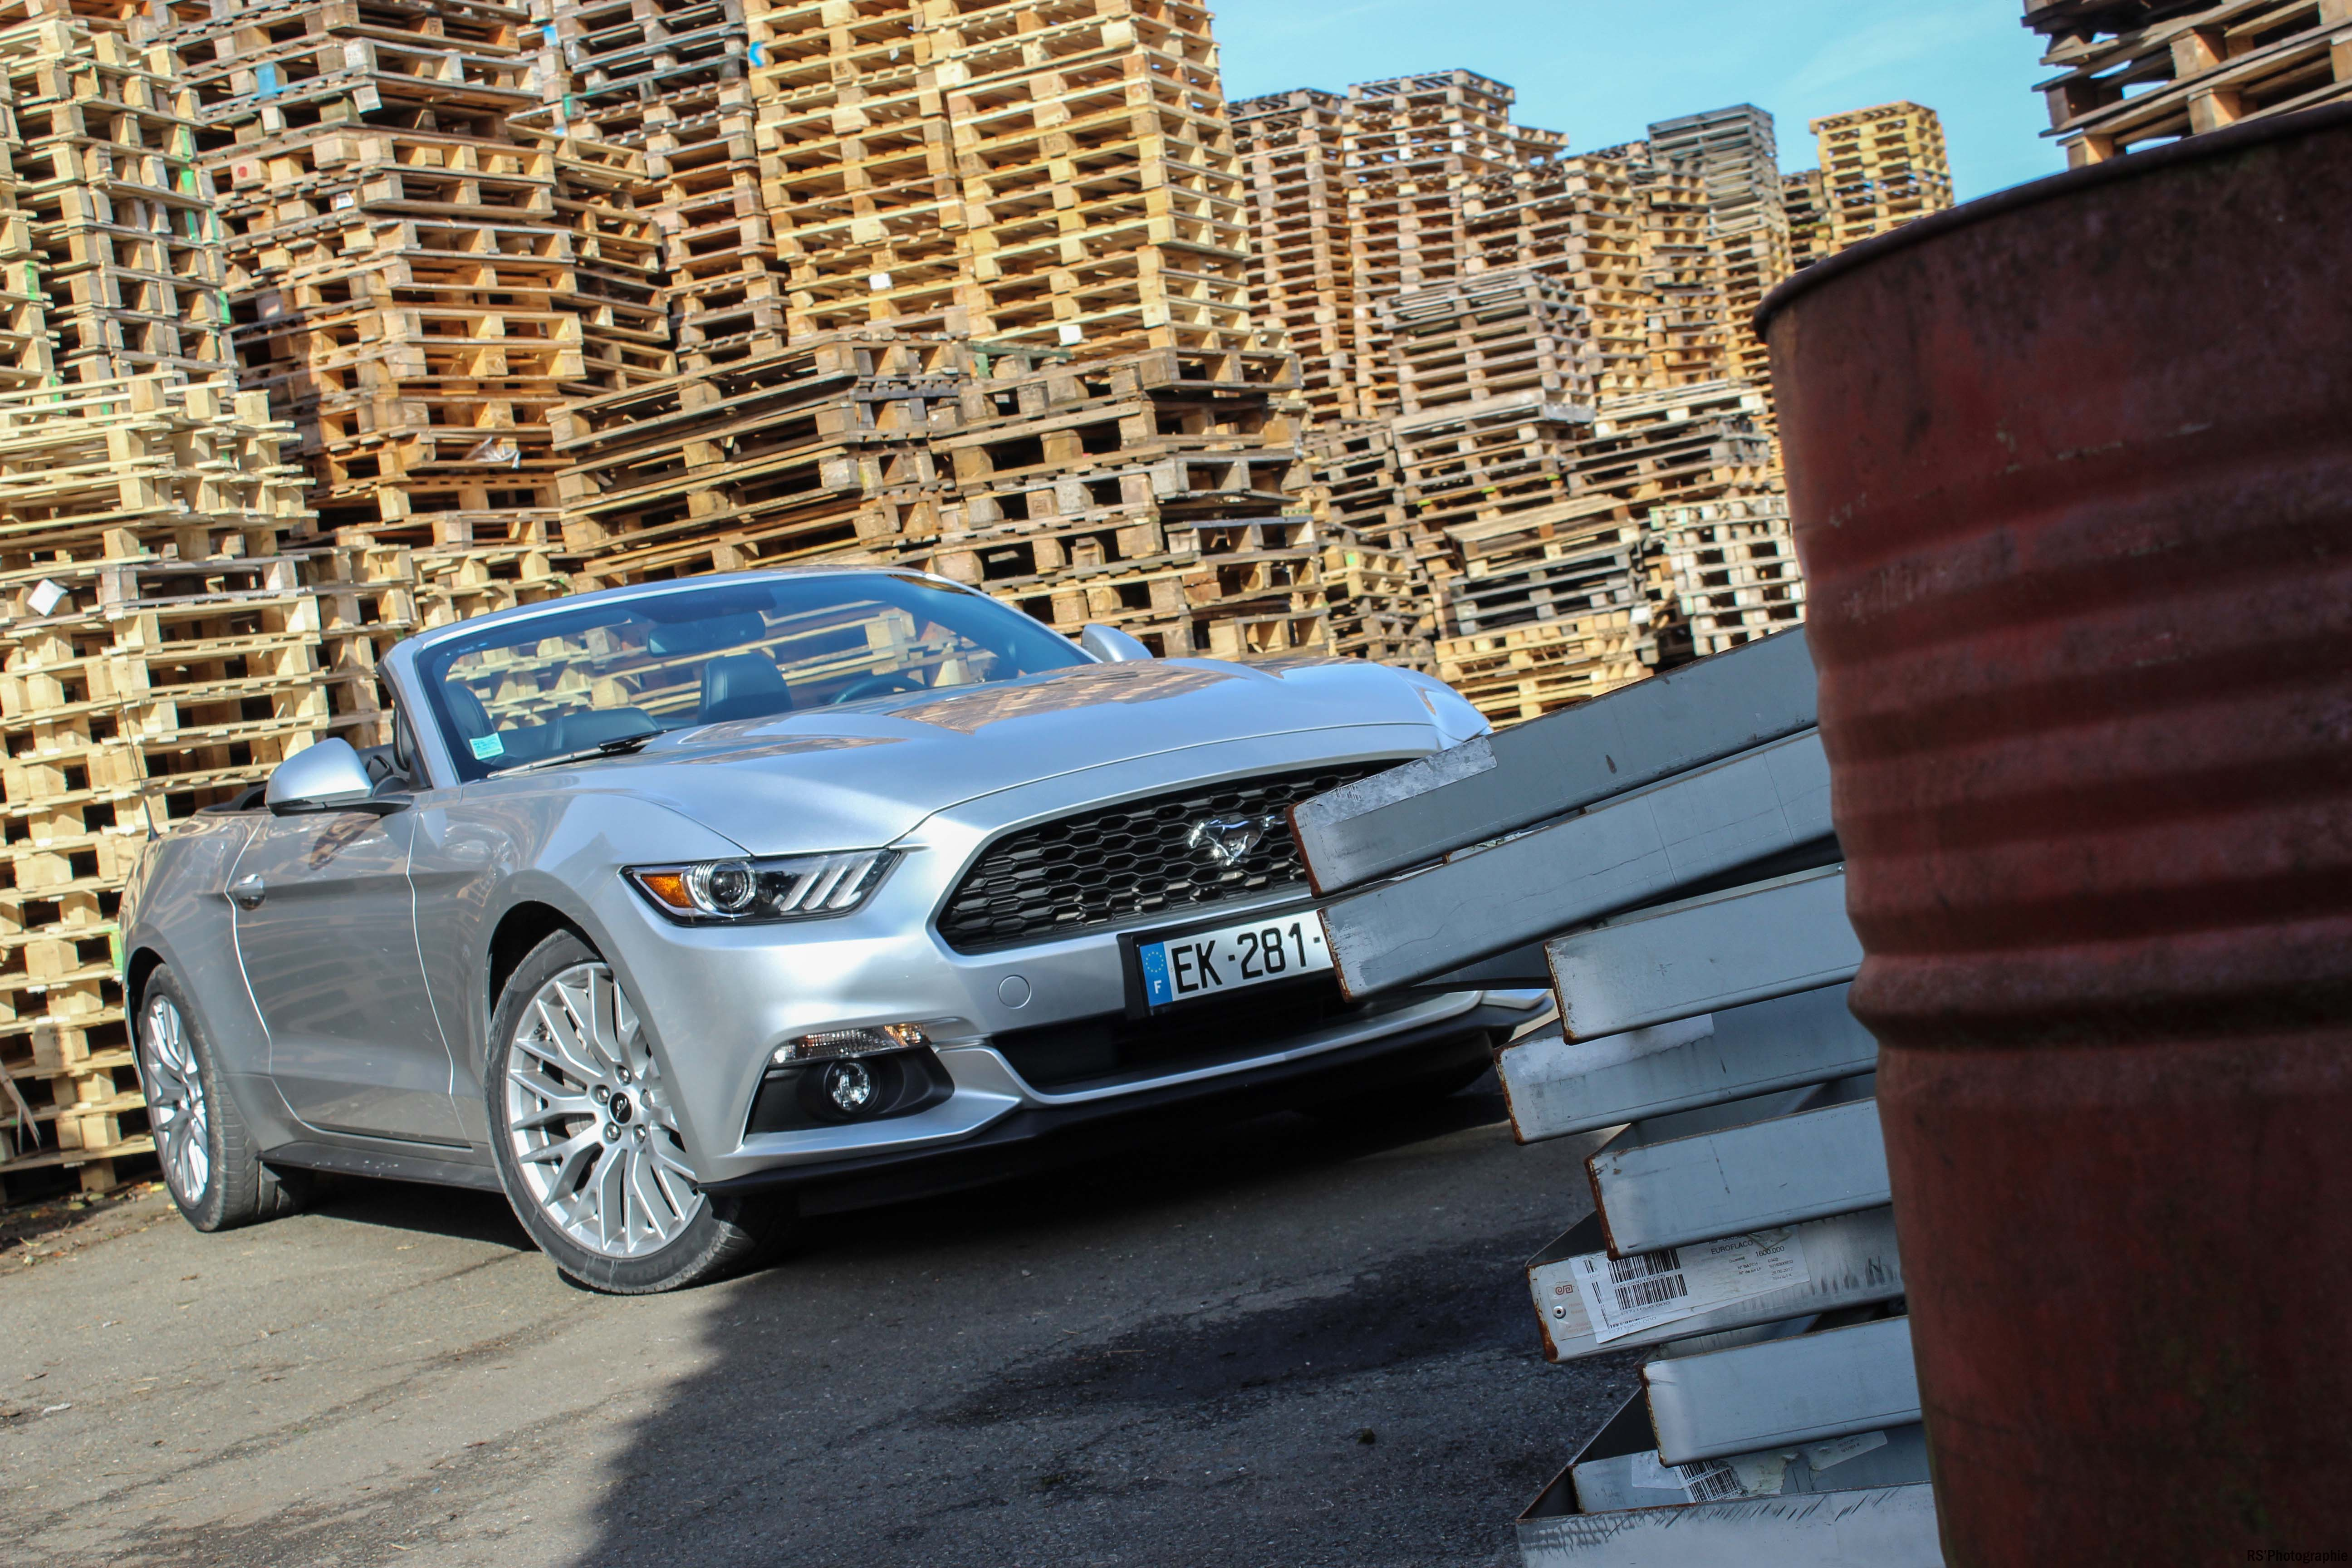 fordmustangeconvertible22-ford-mustang-convertible-ecoboost-avant-front-Arnaud Demasier-RSPhotographie